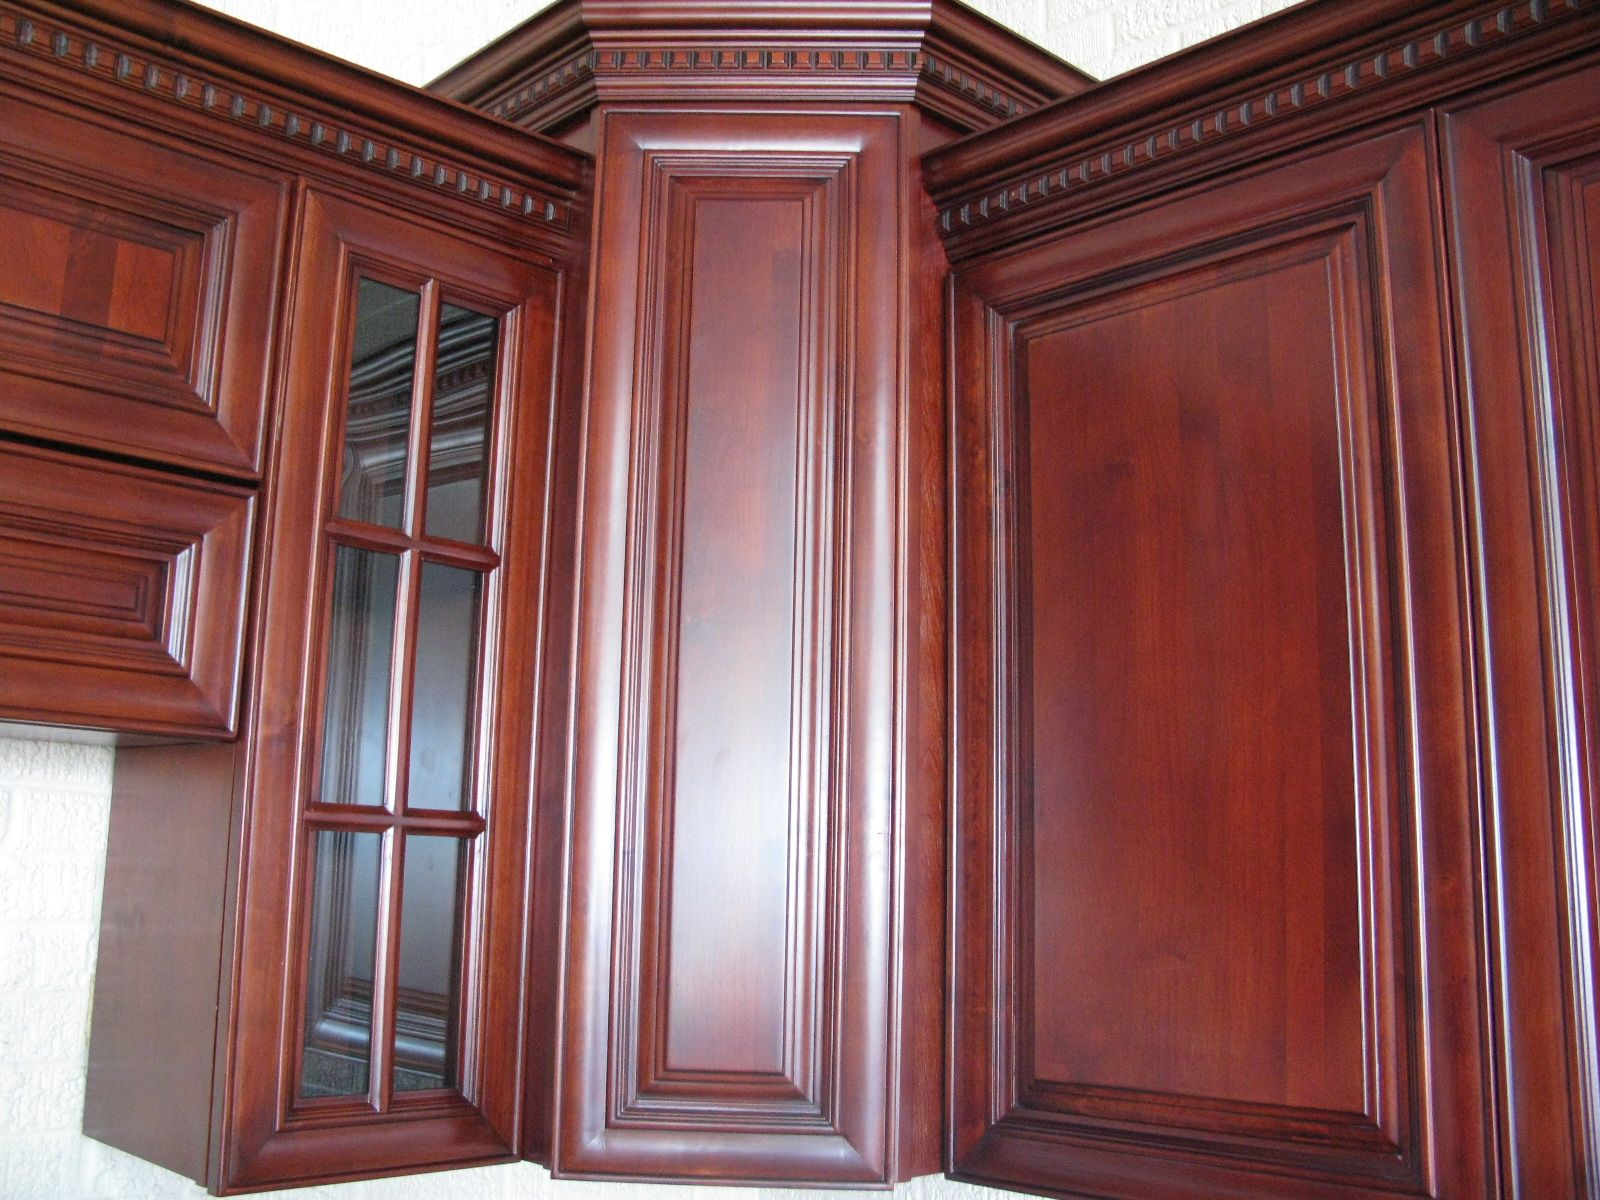 Maple Kitchen Cabinet Doors Cherry Maple Cabinets Crown Molding With Dentil Detail Added 15